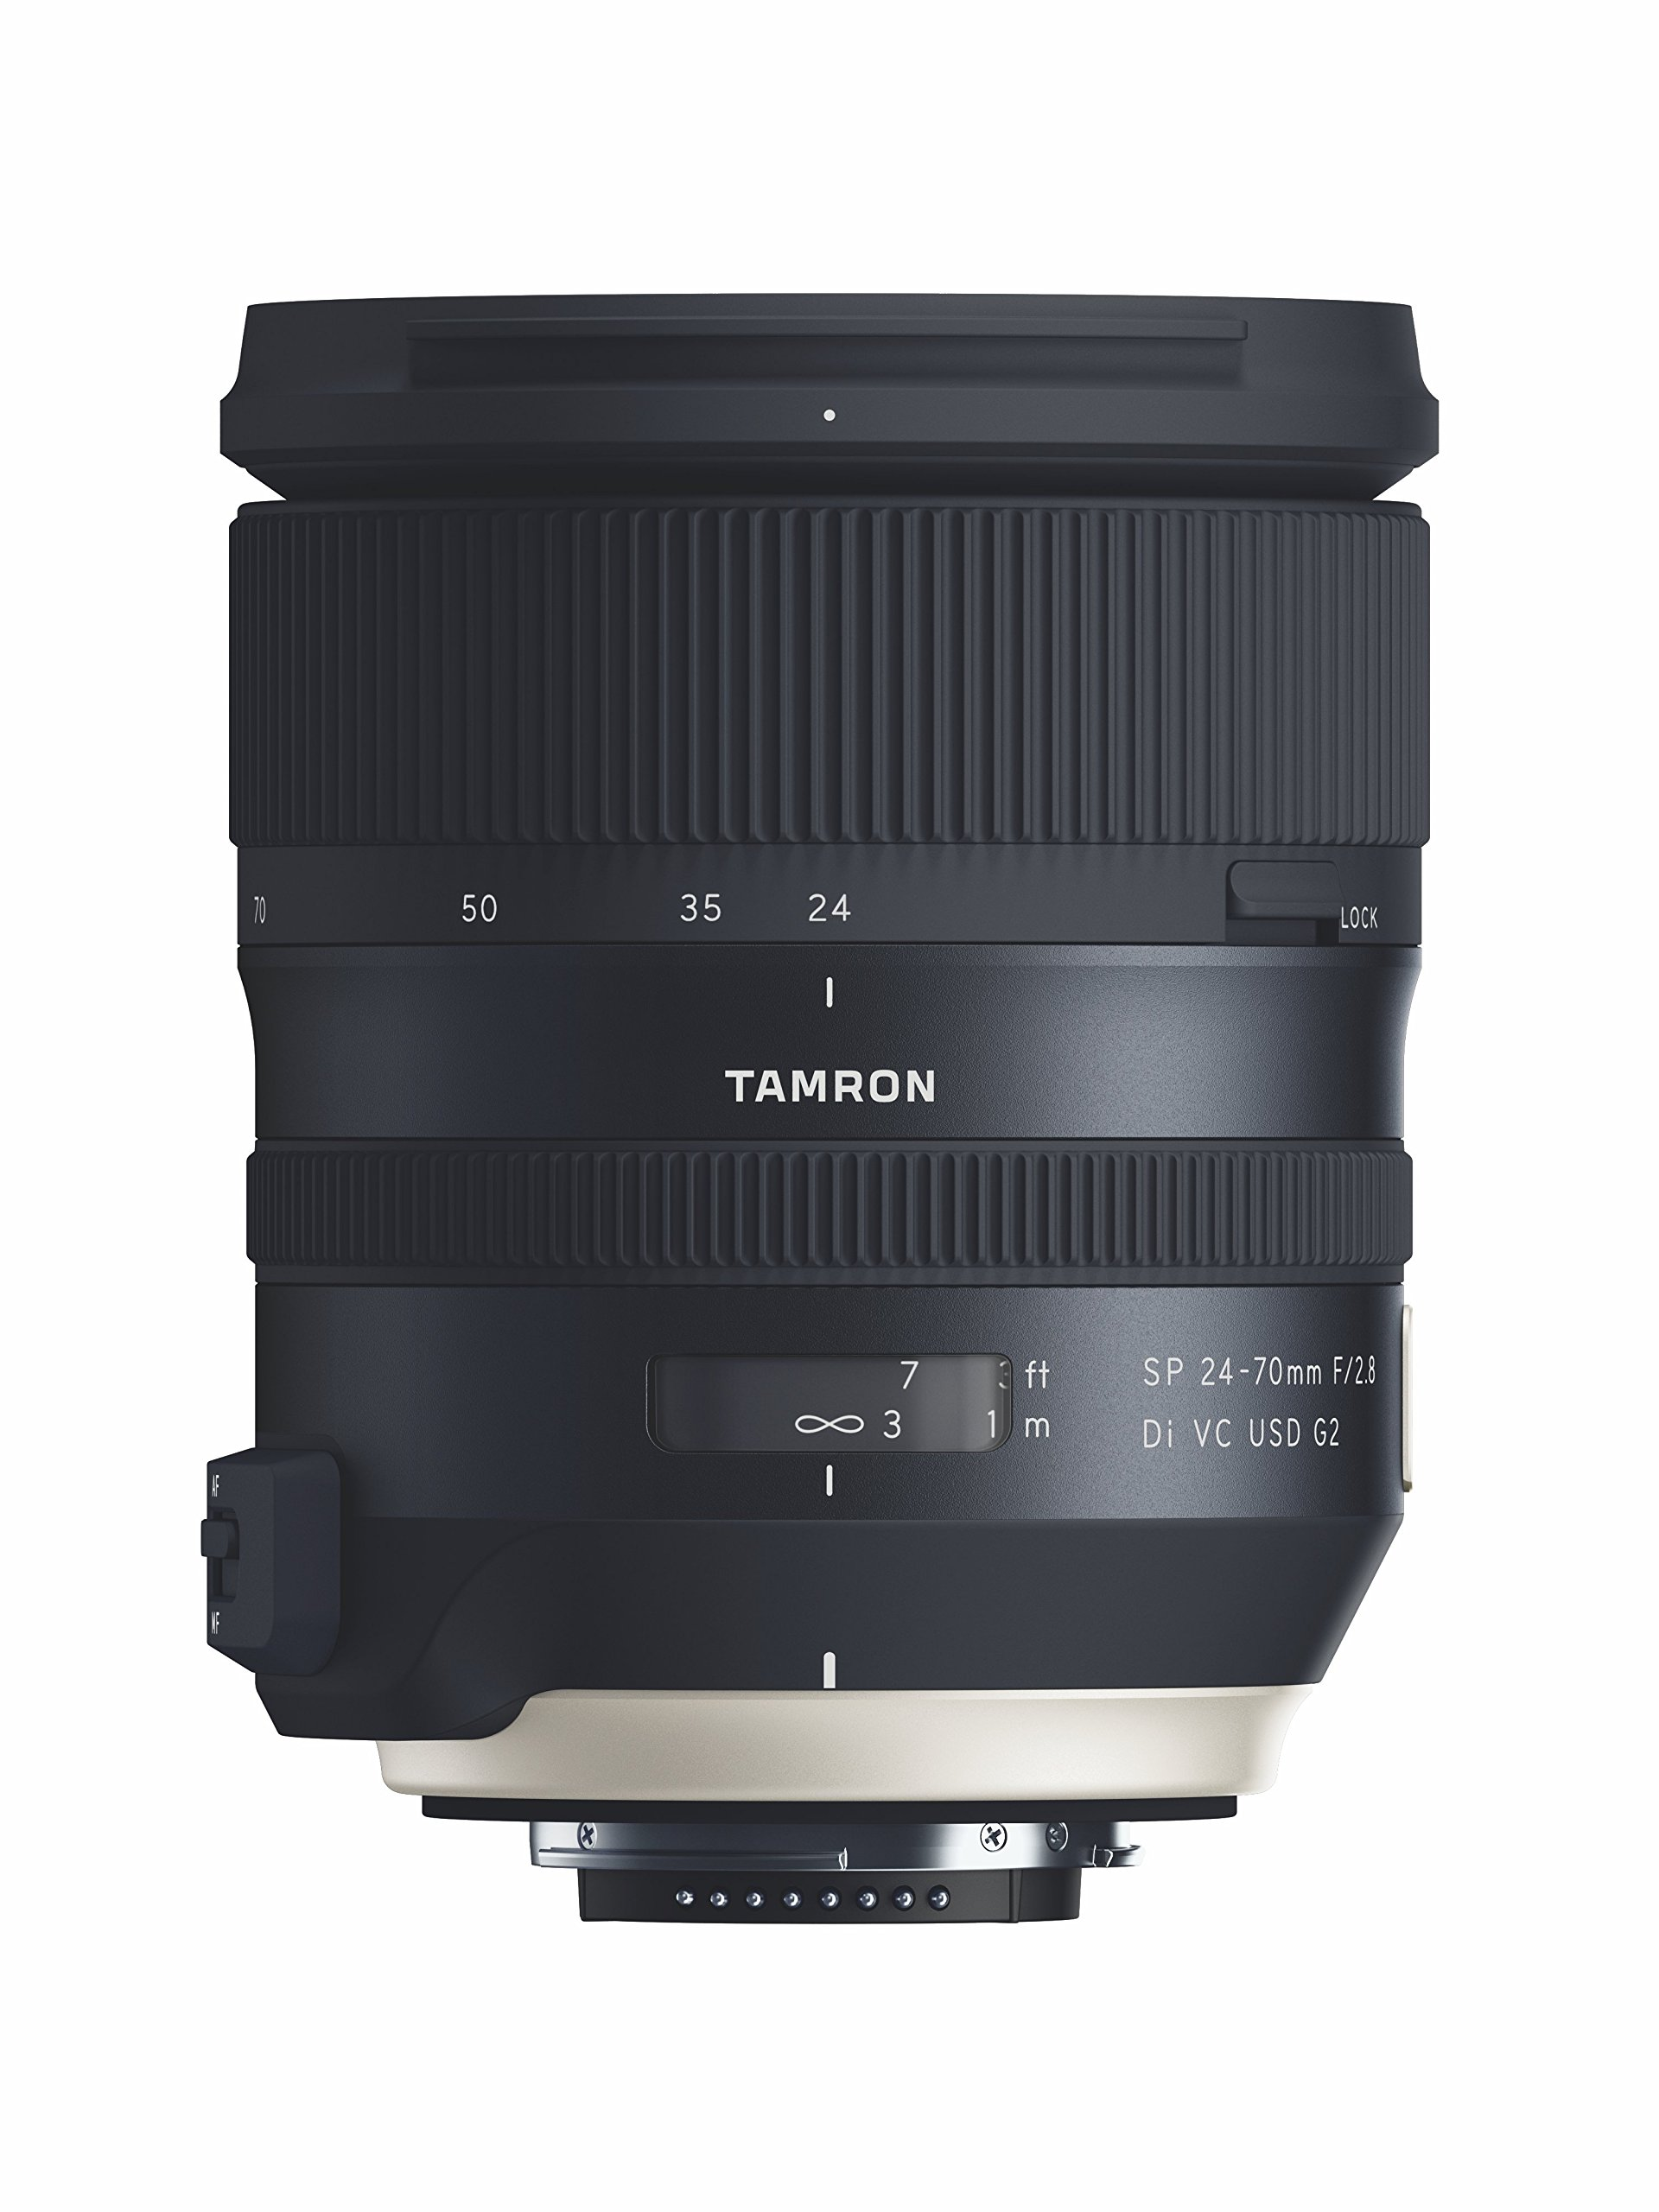 Tamron 24-70mm F/2.8 G2 Di VC USD G2 Zoom Lens for Nikon Mount by Tamron